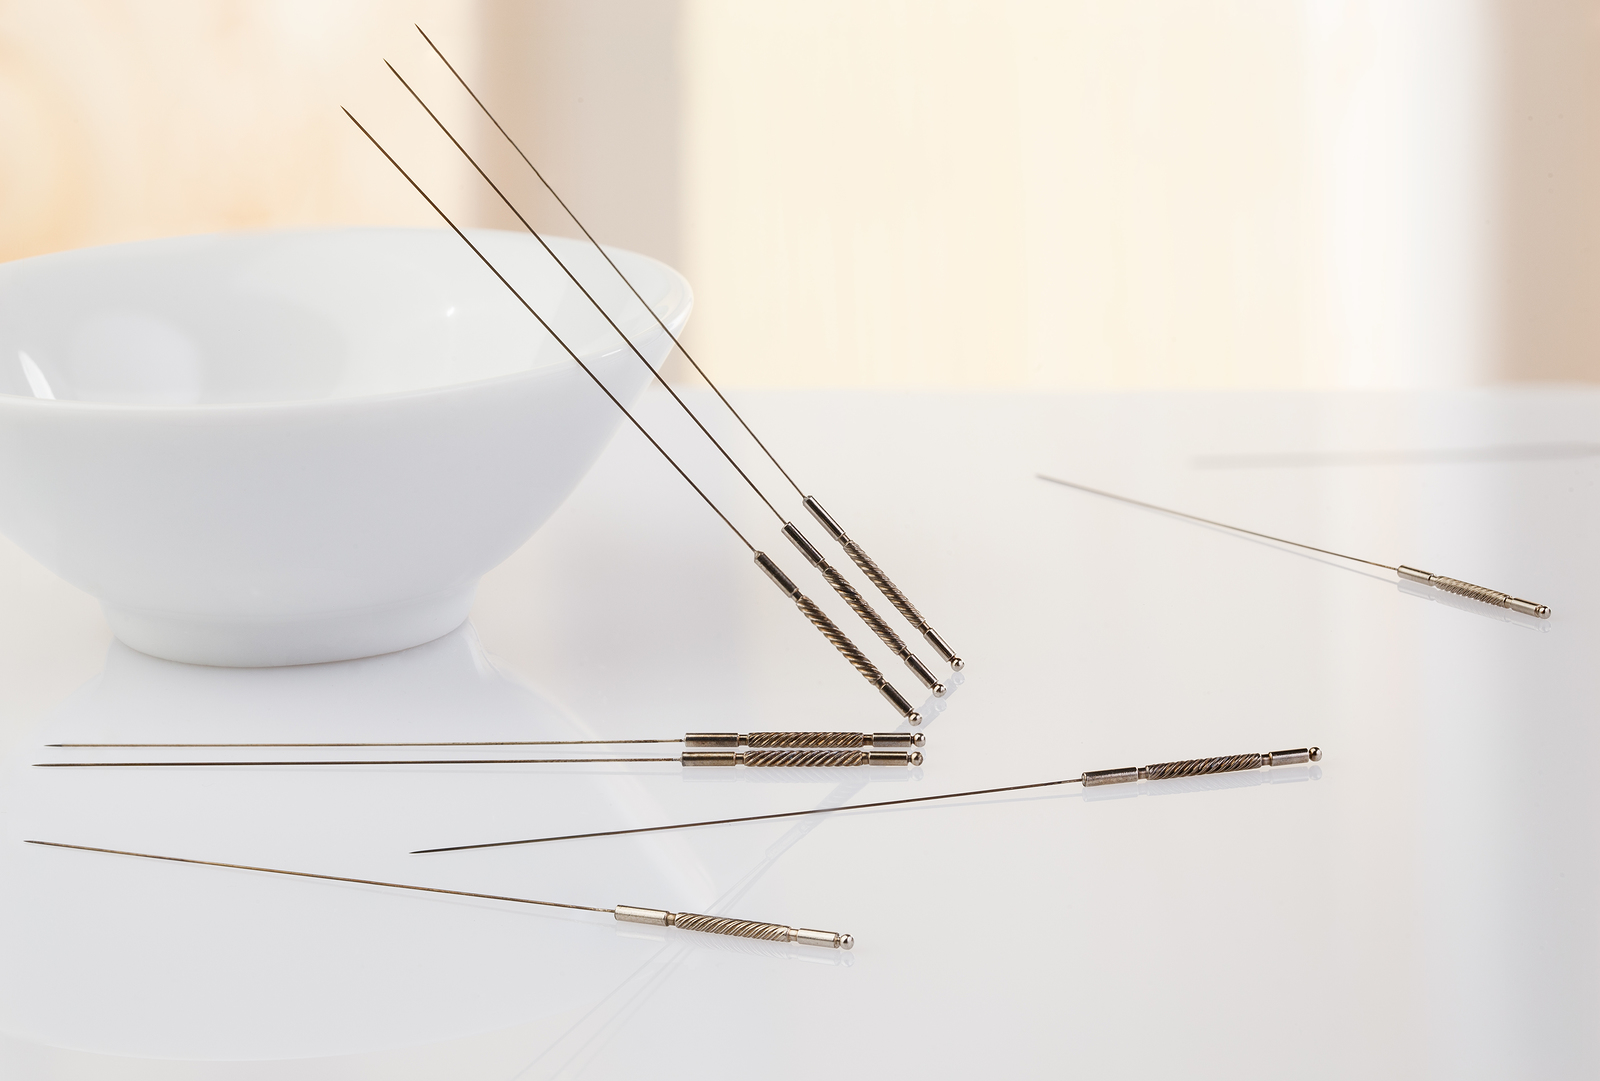 Bill in Congress would force Medicare to cover Acupuncture